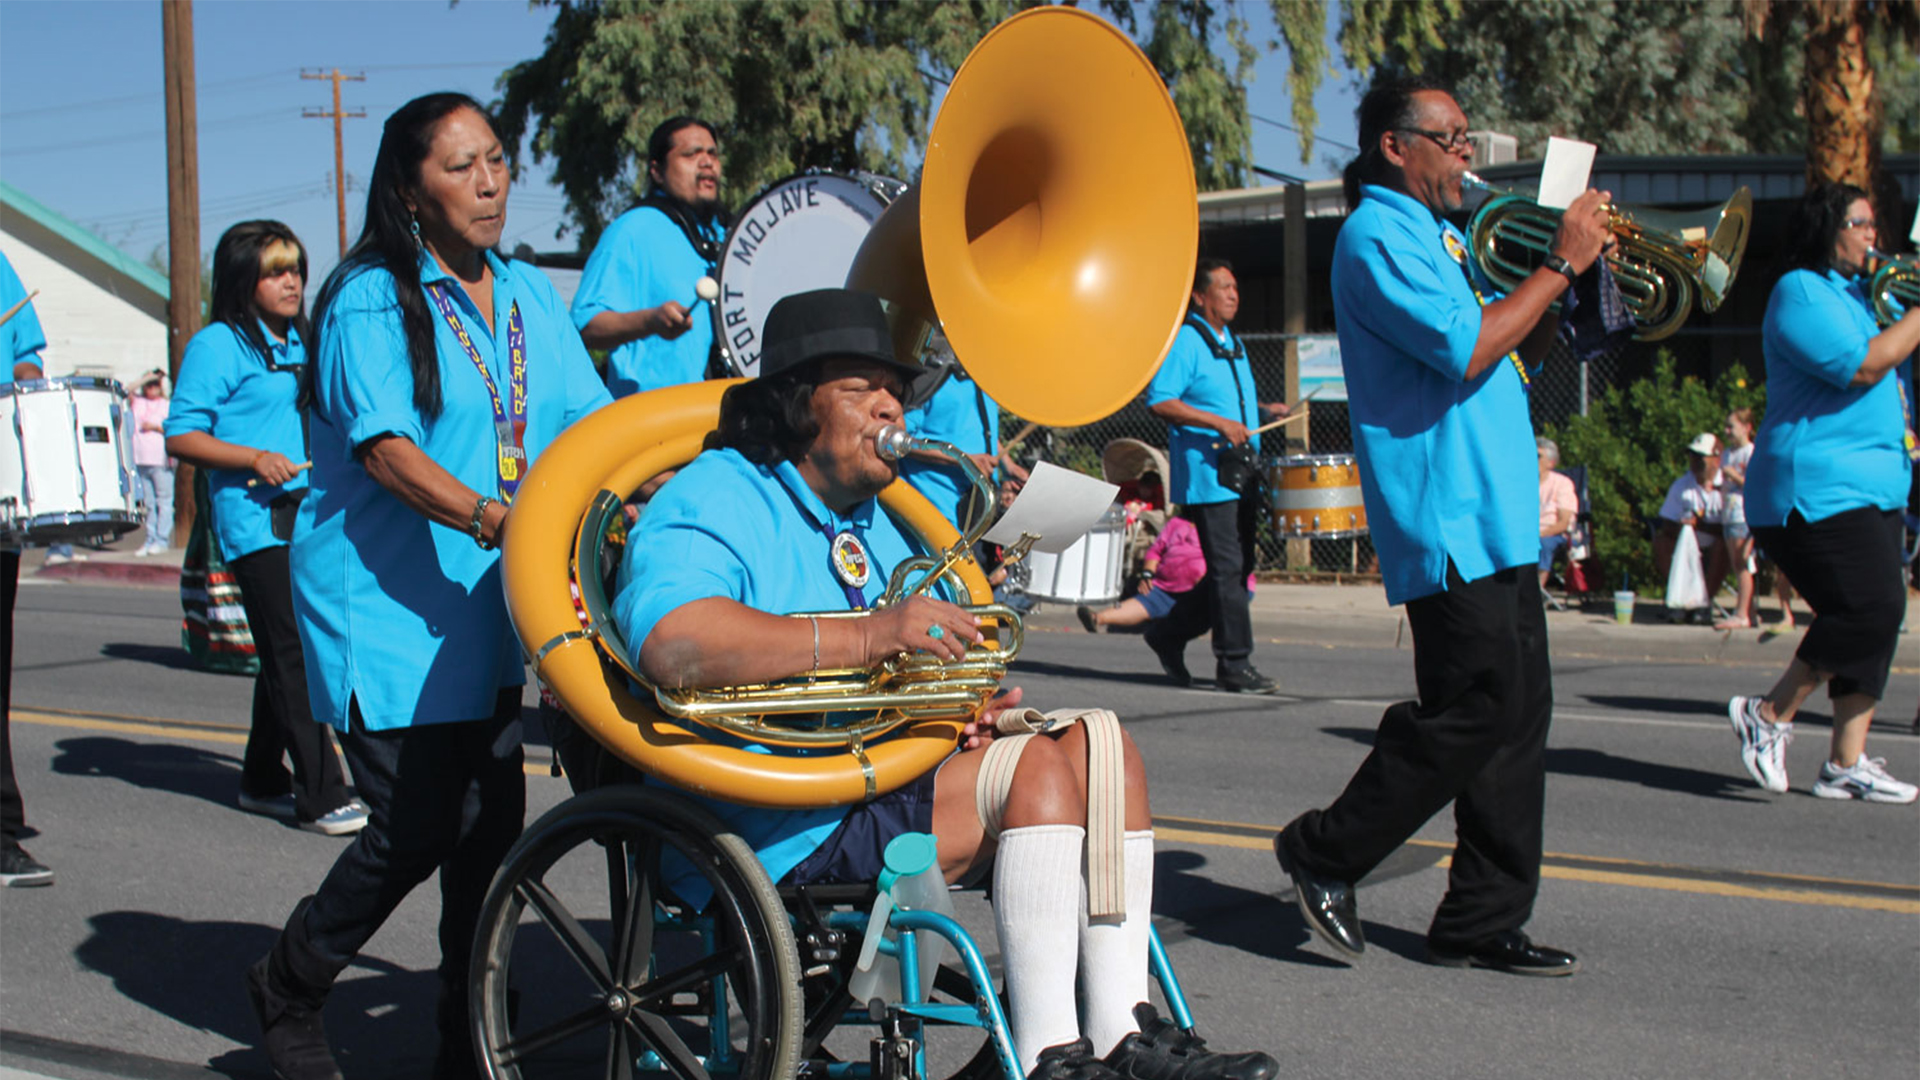 SOUSA ON THE REZ: MARCHING TO THE BEAT OF A DIFFERENT DRUM